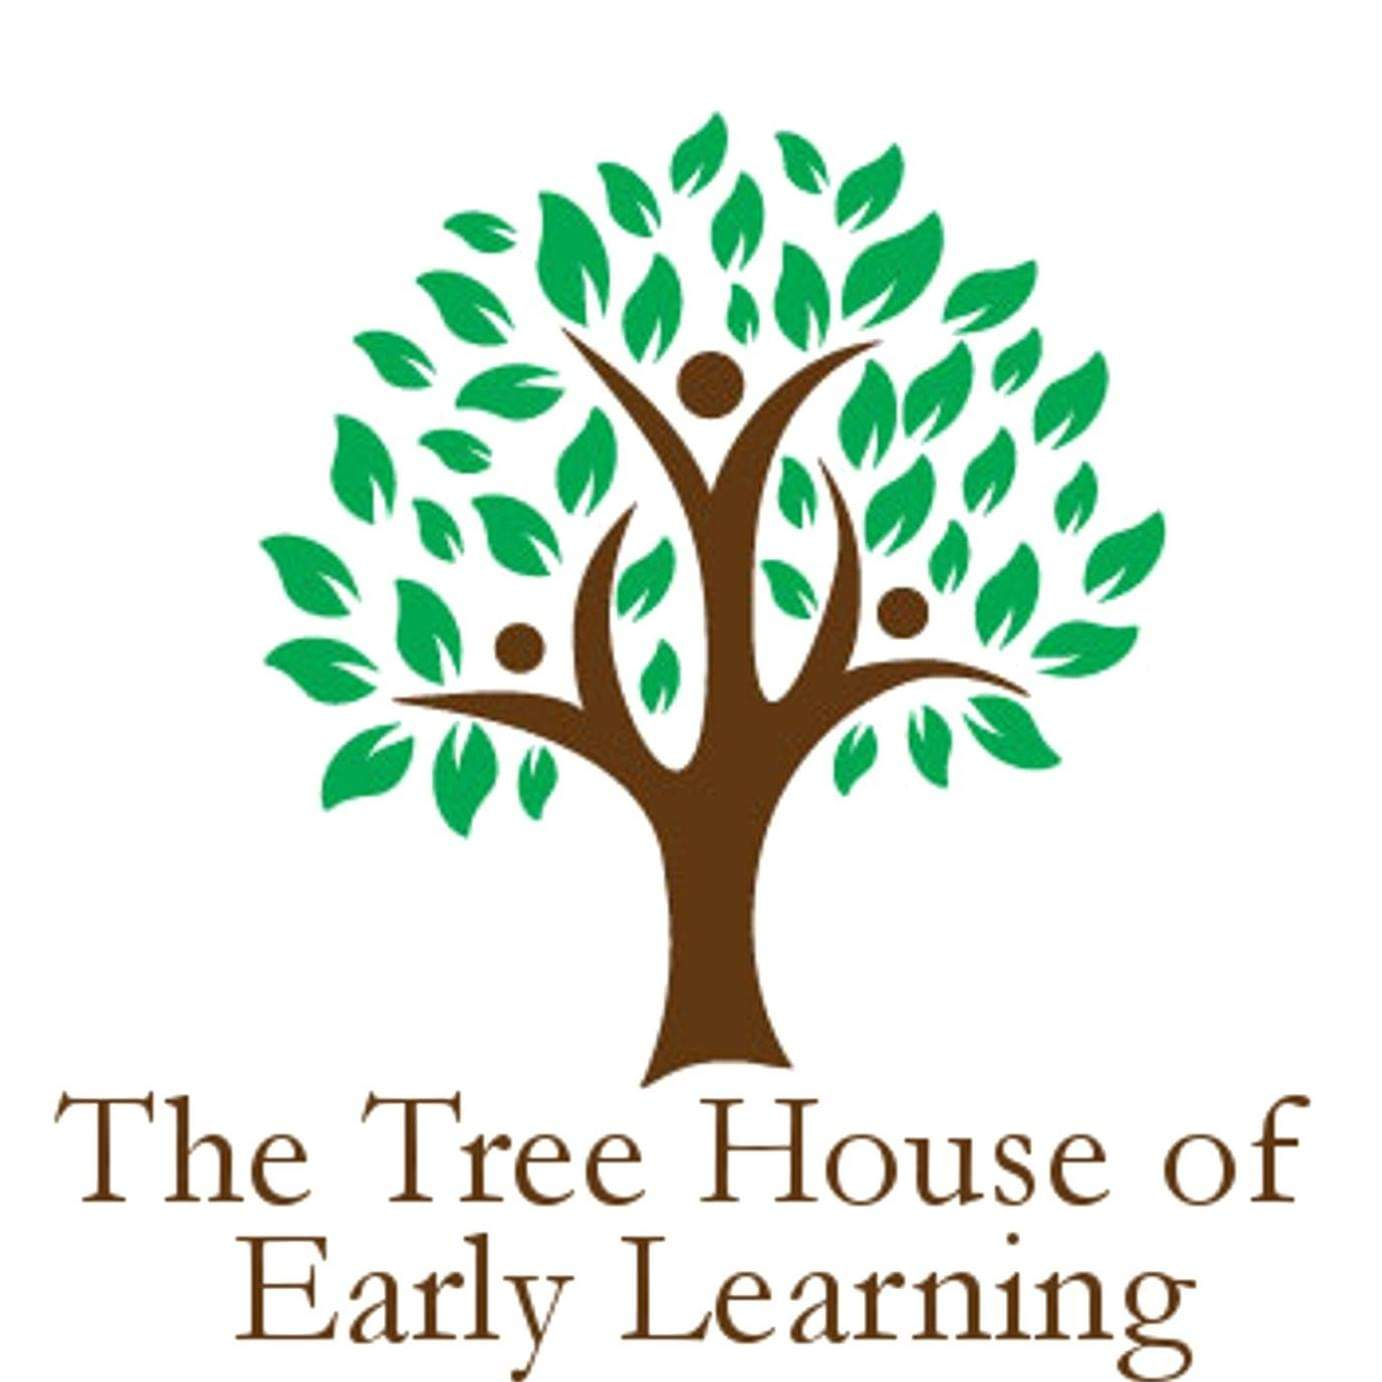 The Tree House of Early Learning